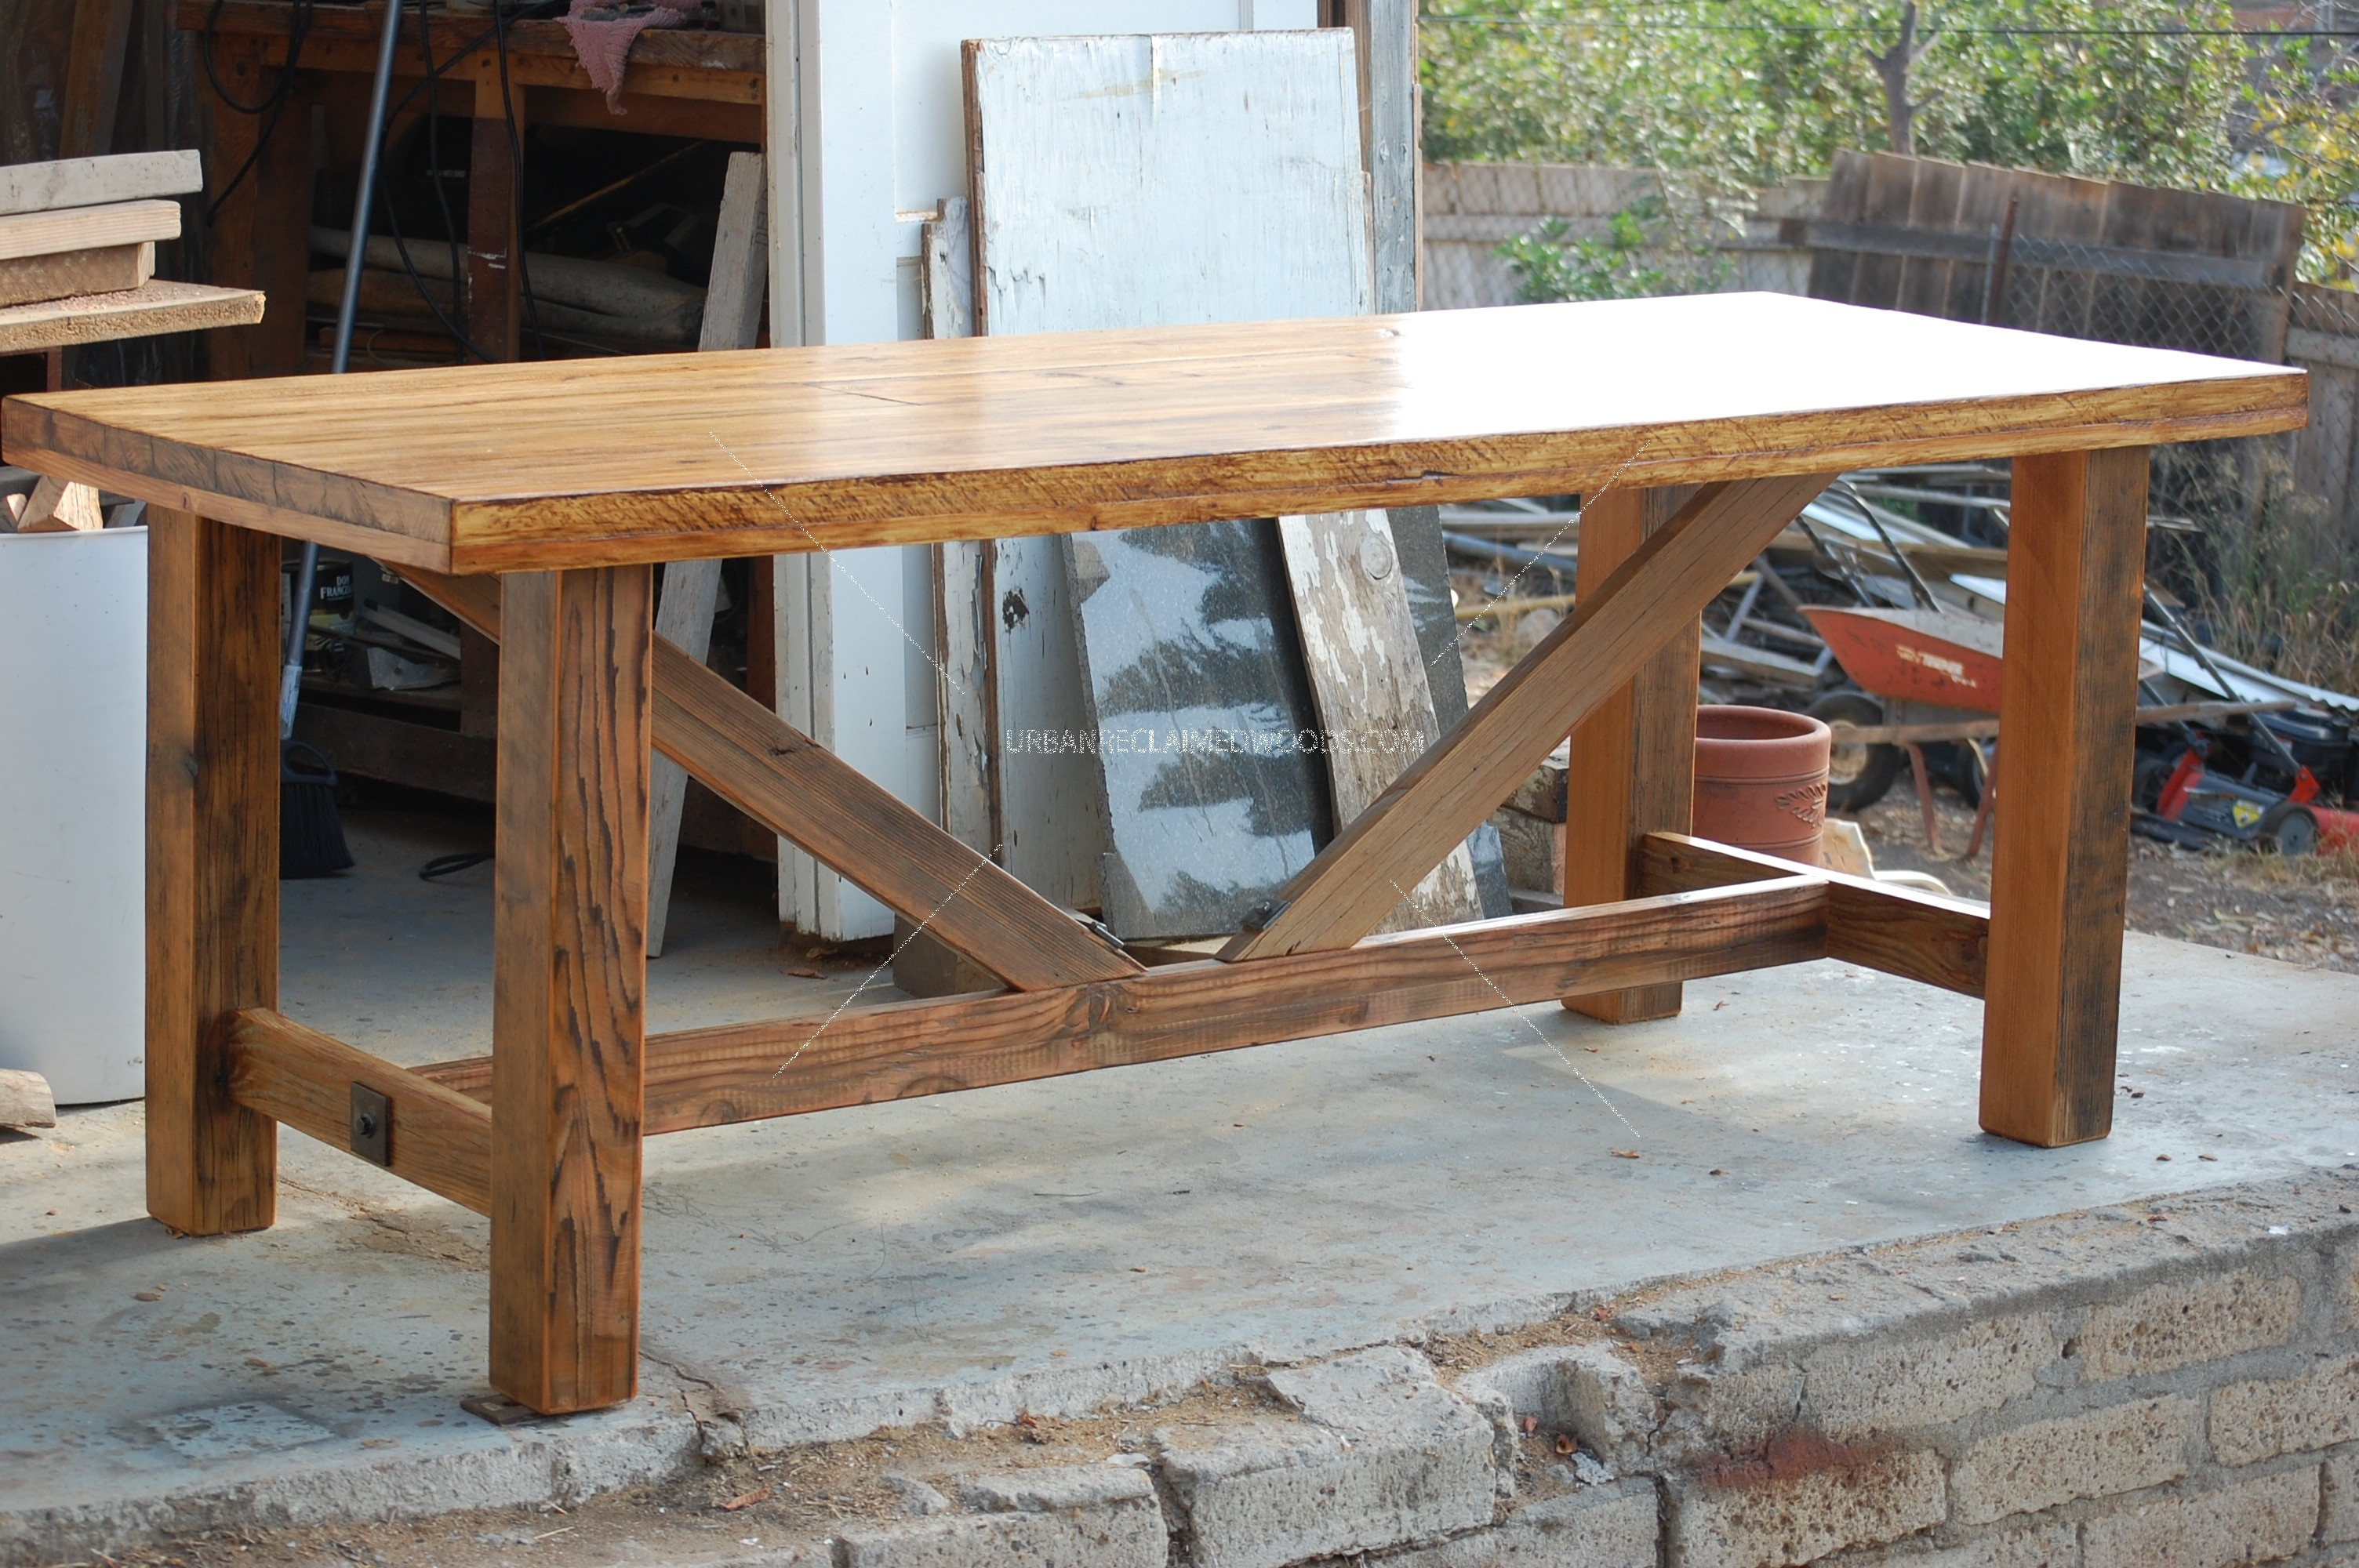 Dining Table 7' reclaimed woods trestle base. #urbanreclaimedwoods